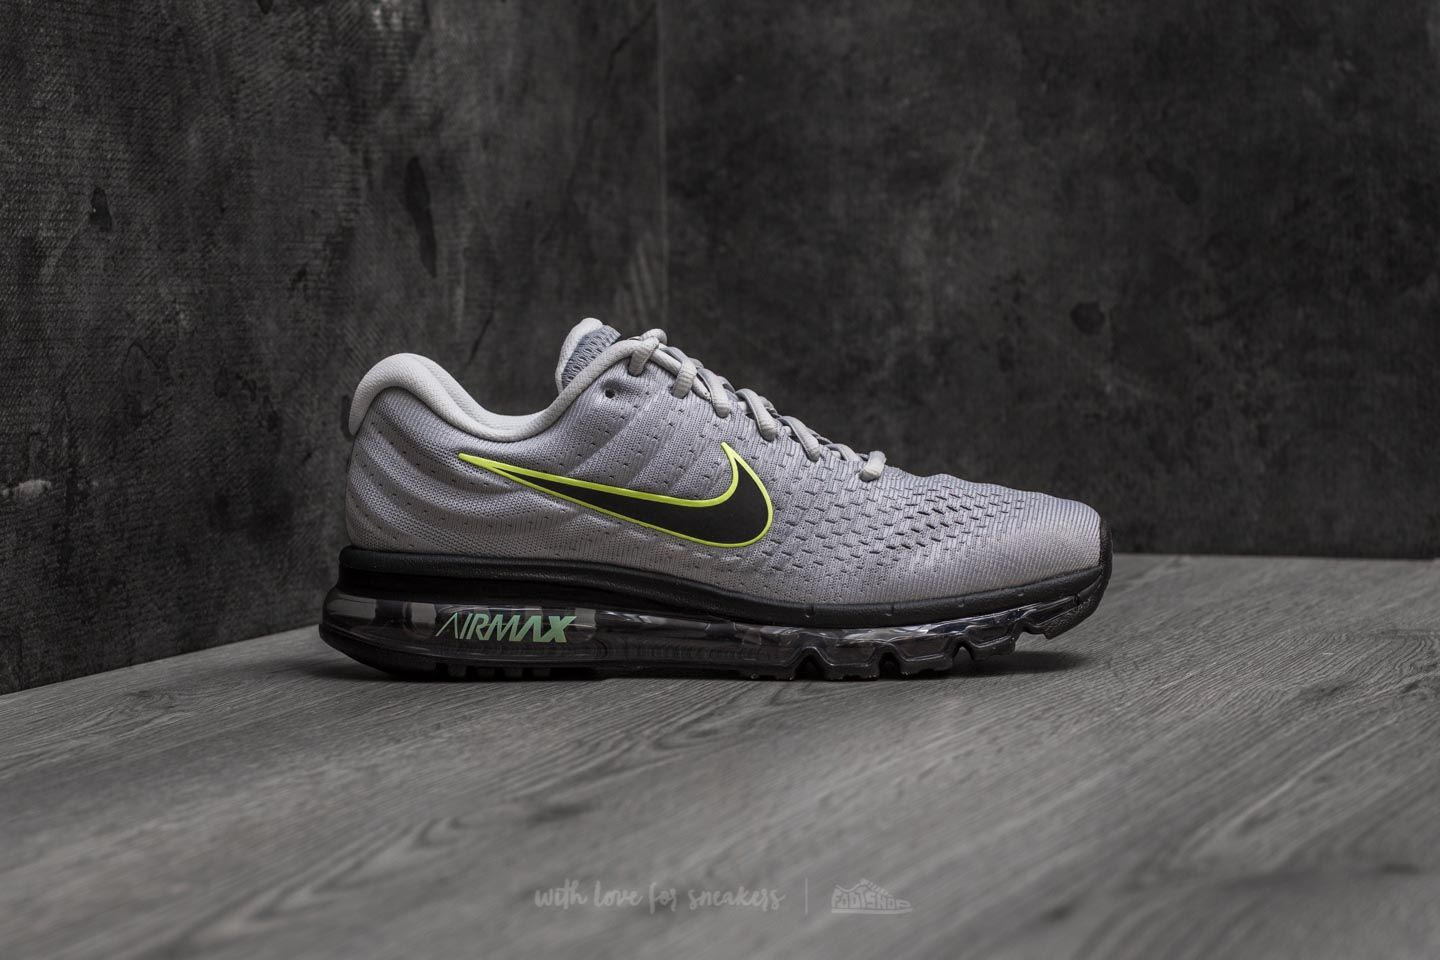 Wolf GreyBlack Pure Platinum Anthracite Nike Nike Air Max